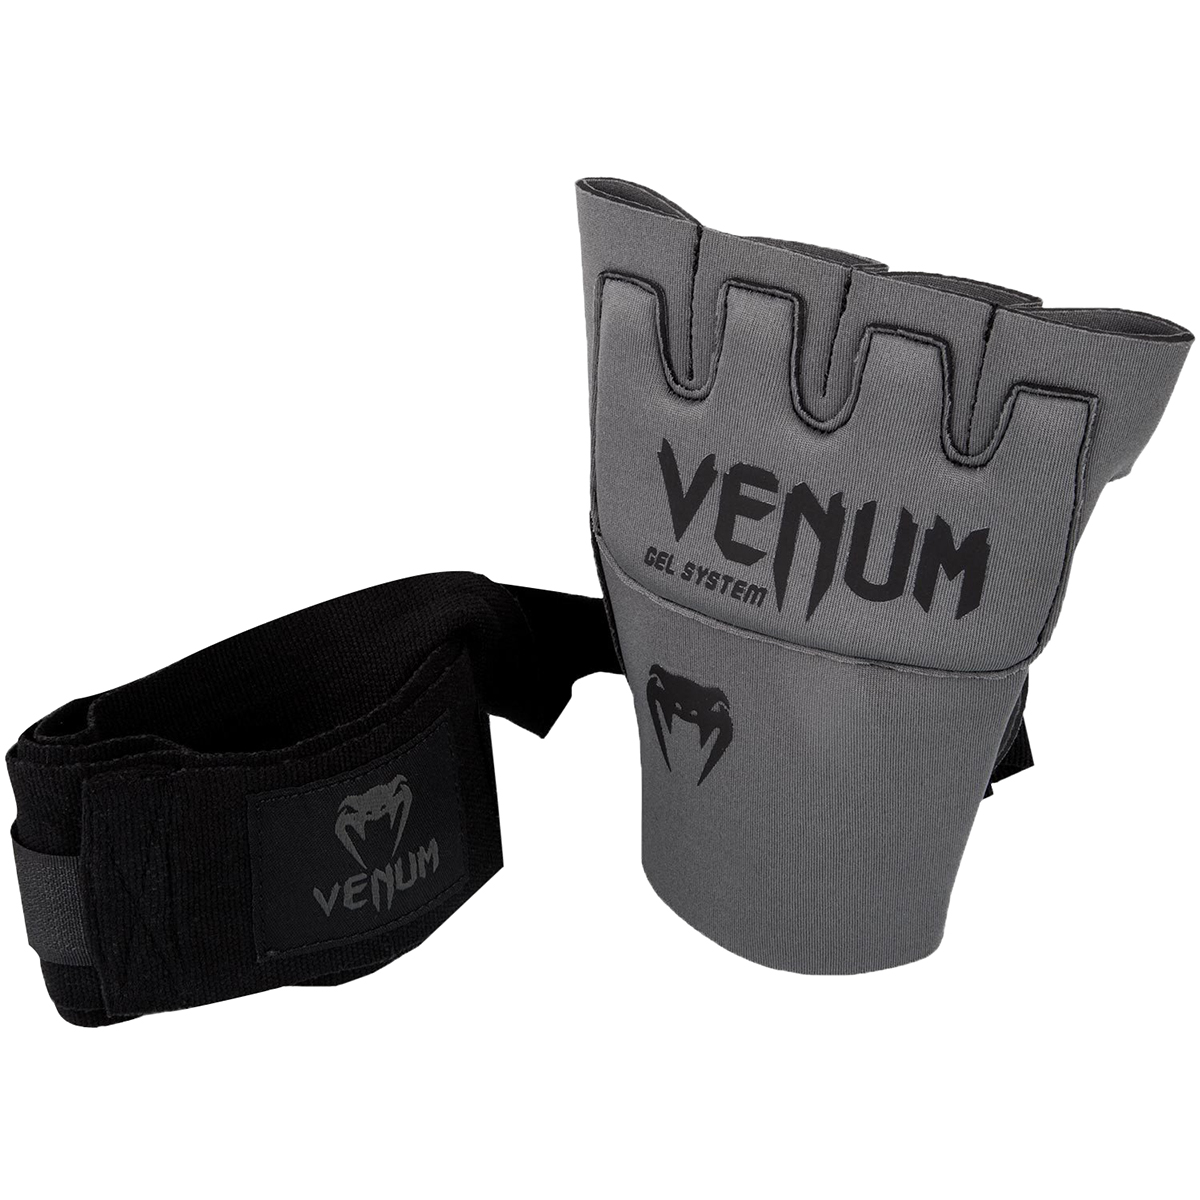 Venum-Kontact-Protective-Shock-Absorbing-Gel-MMA-Glove-Wraps thumbnail 21